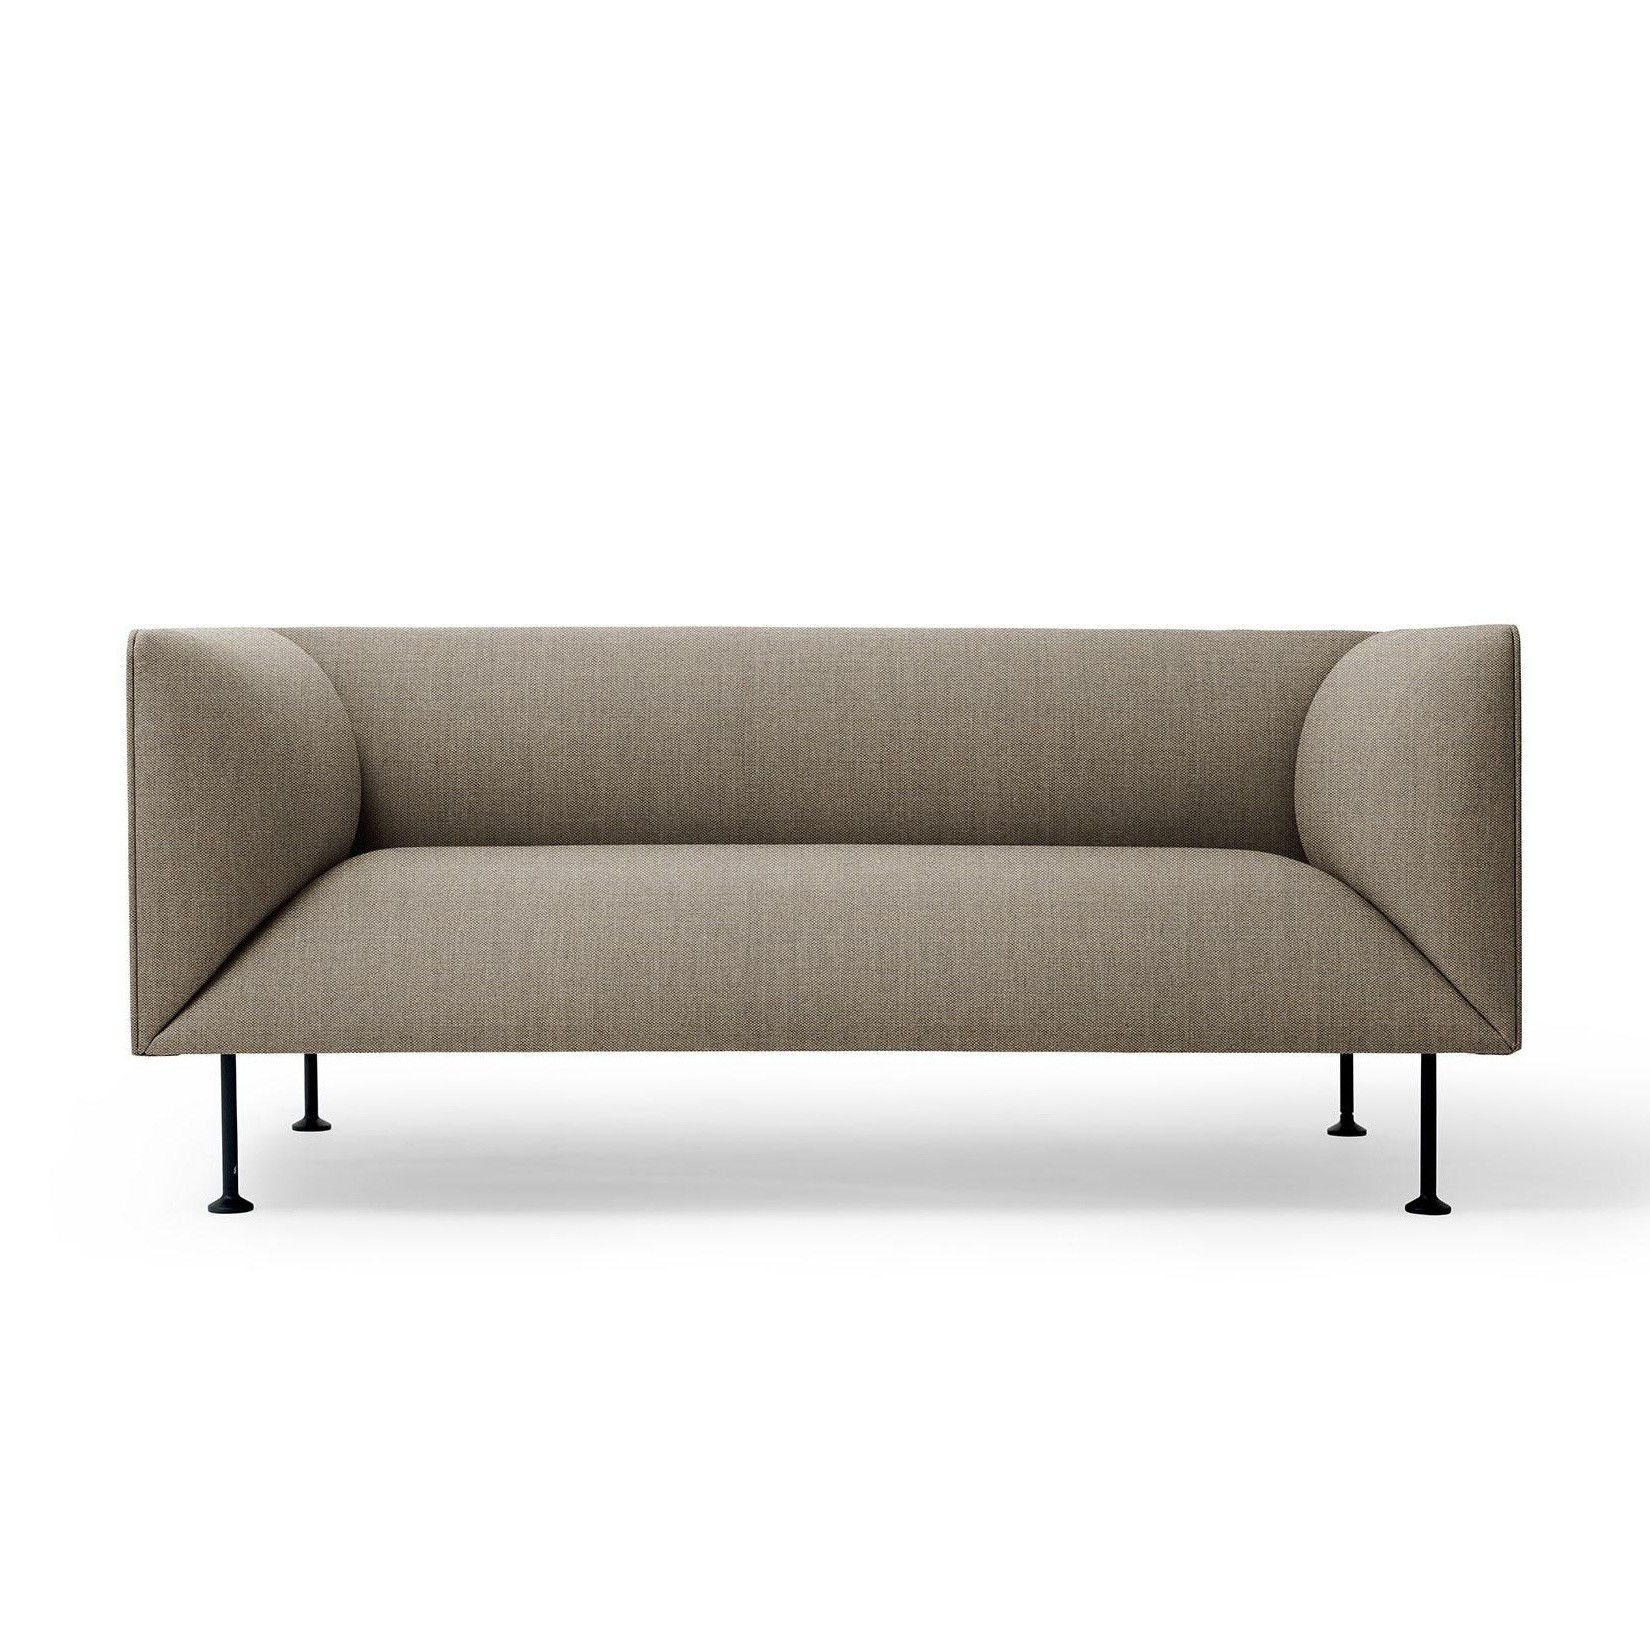 Menu Ot 2 Seater Sofa Ambientedirect